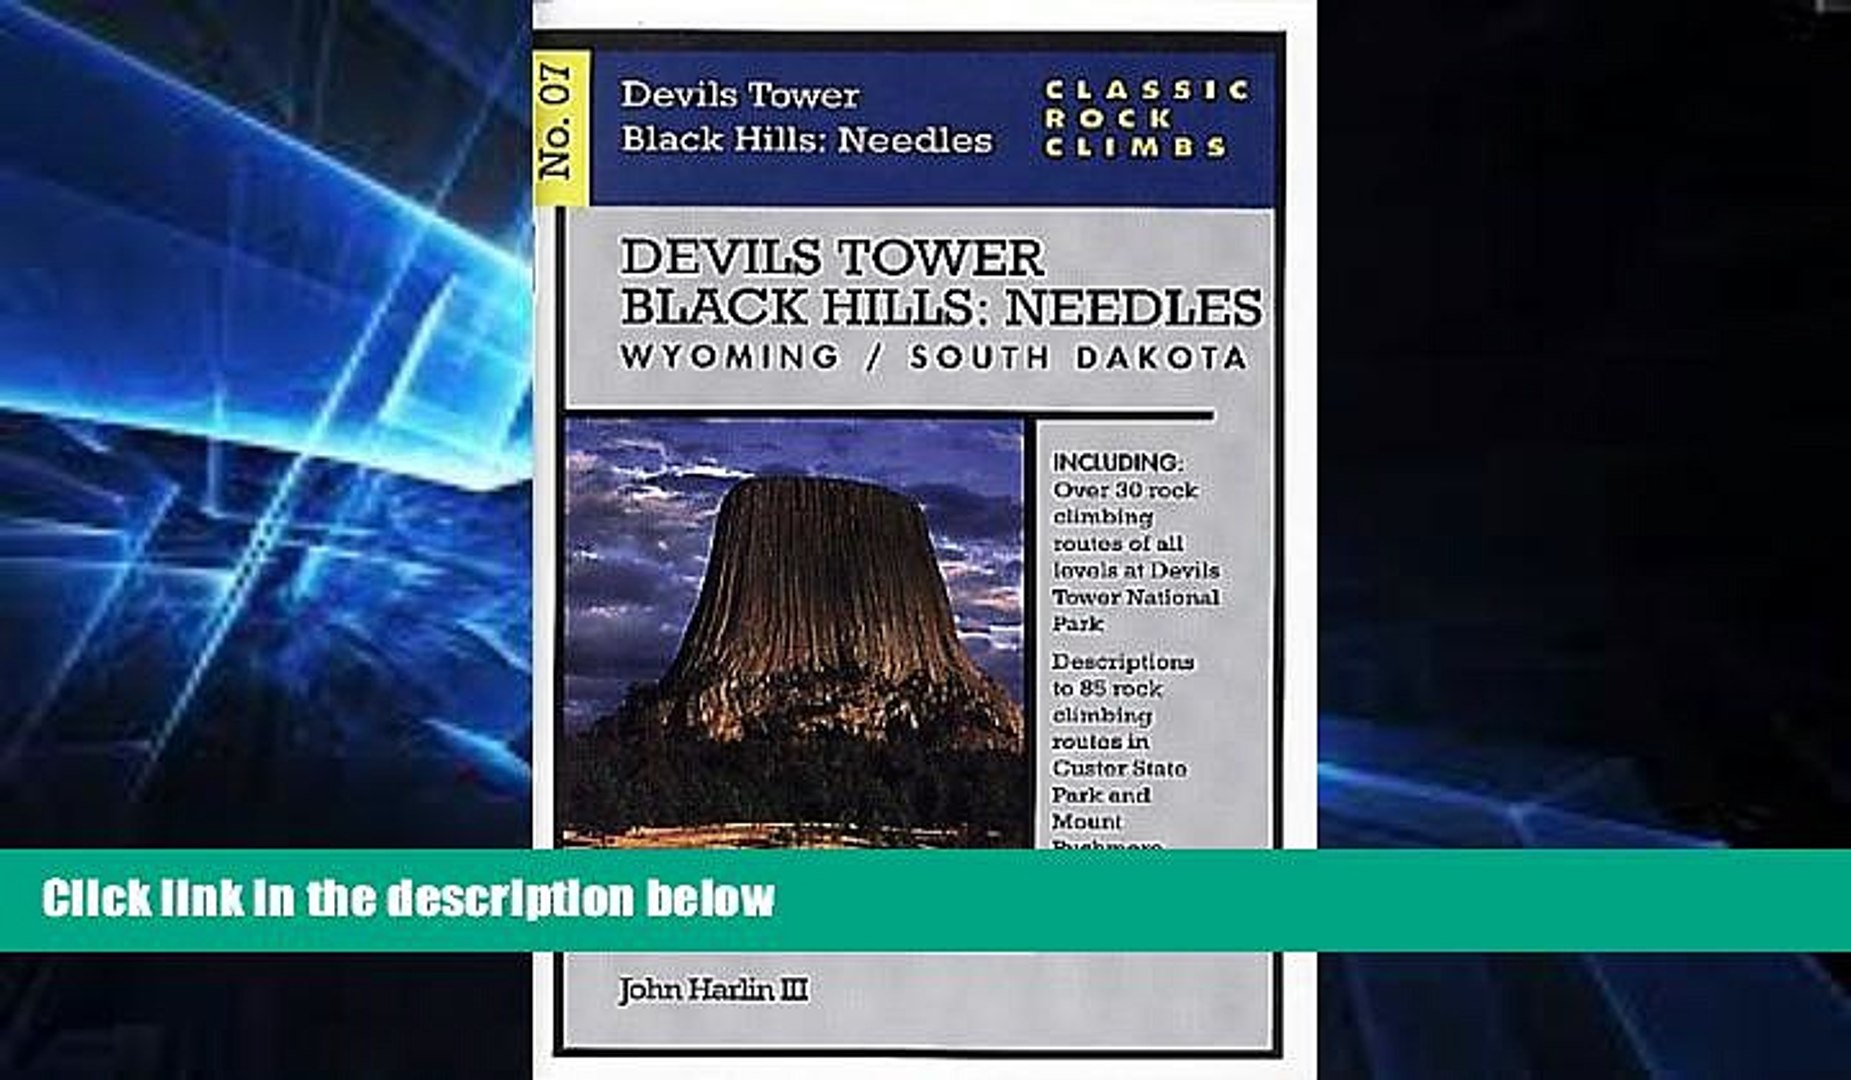 Ebook Best Deals  Classic Rock Climbs No. 07 Devils Tower/Black Hills: Needles, Wyoming and South